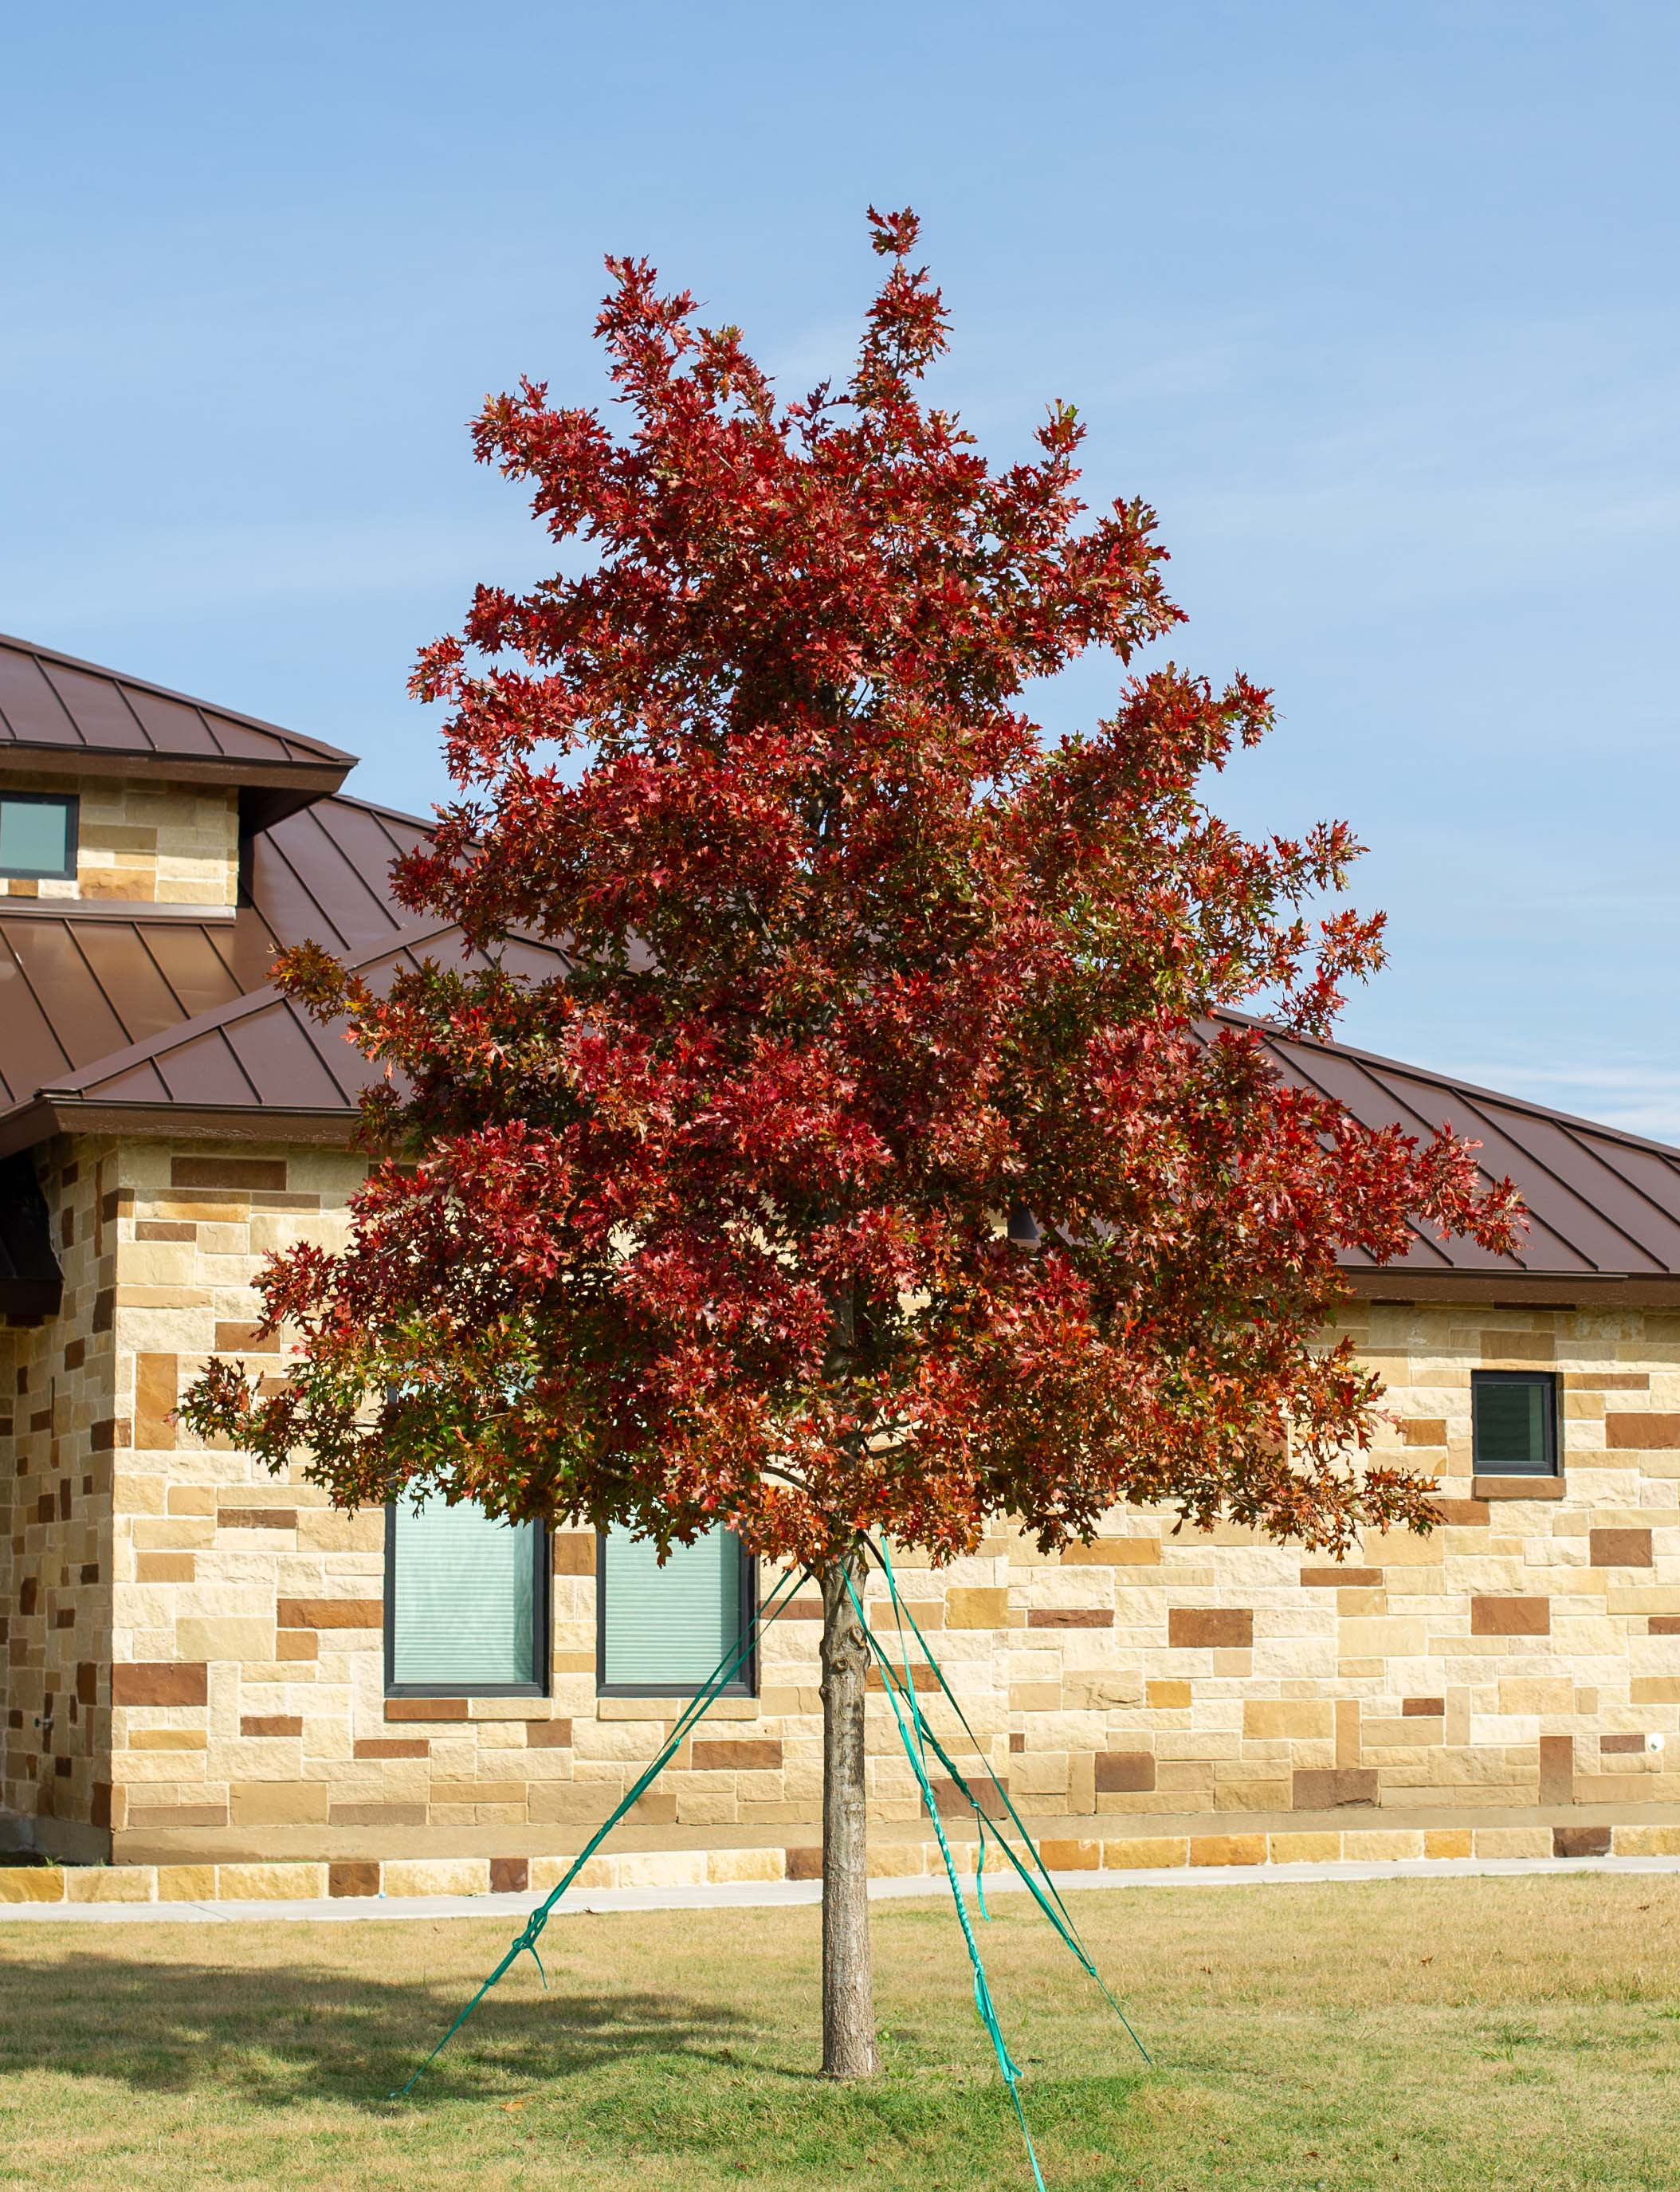 Red Oak tree with Fall foliage. Tree planted and installed by Treeland Nursery.